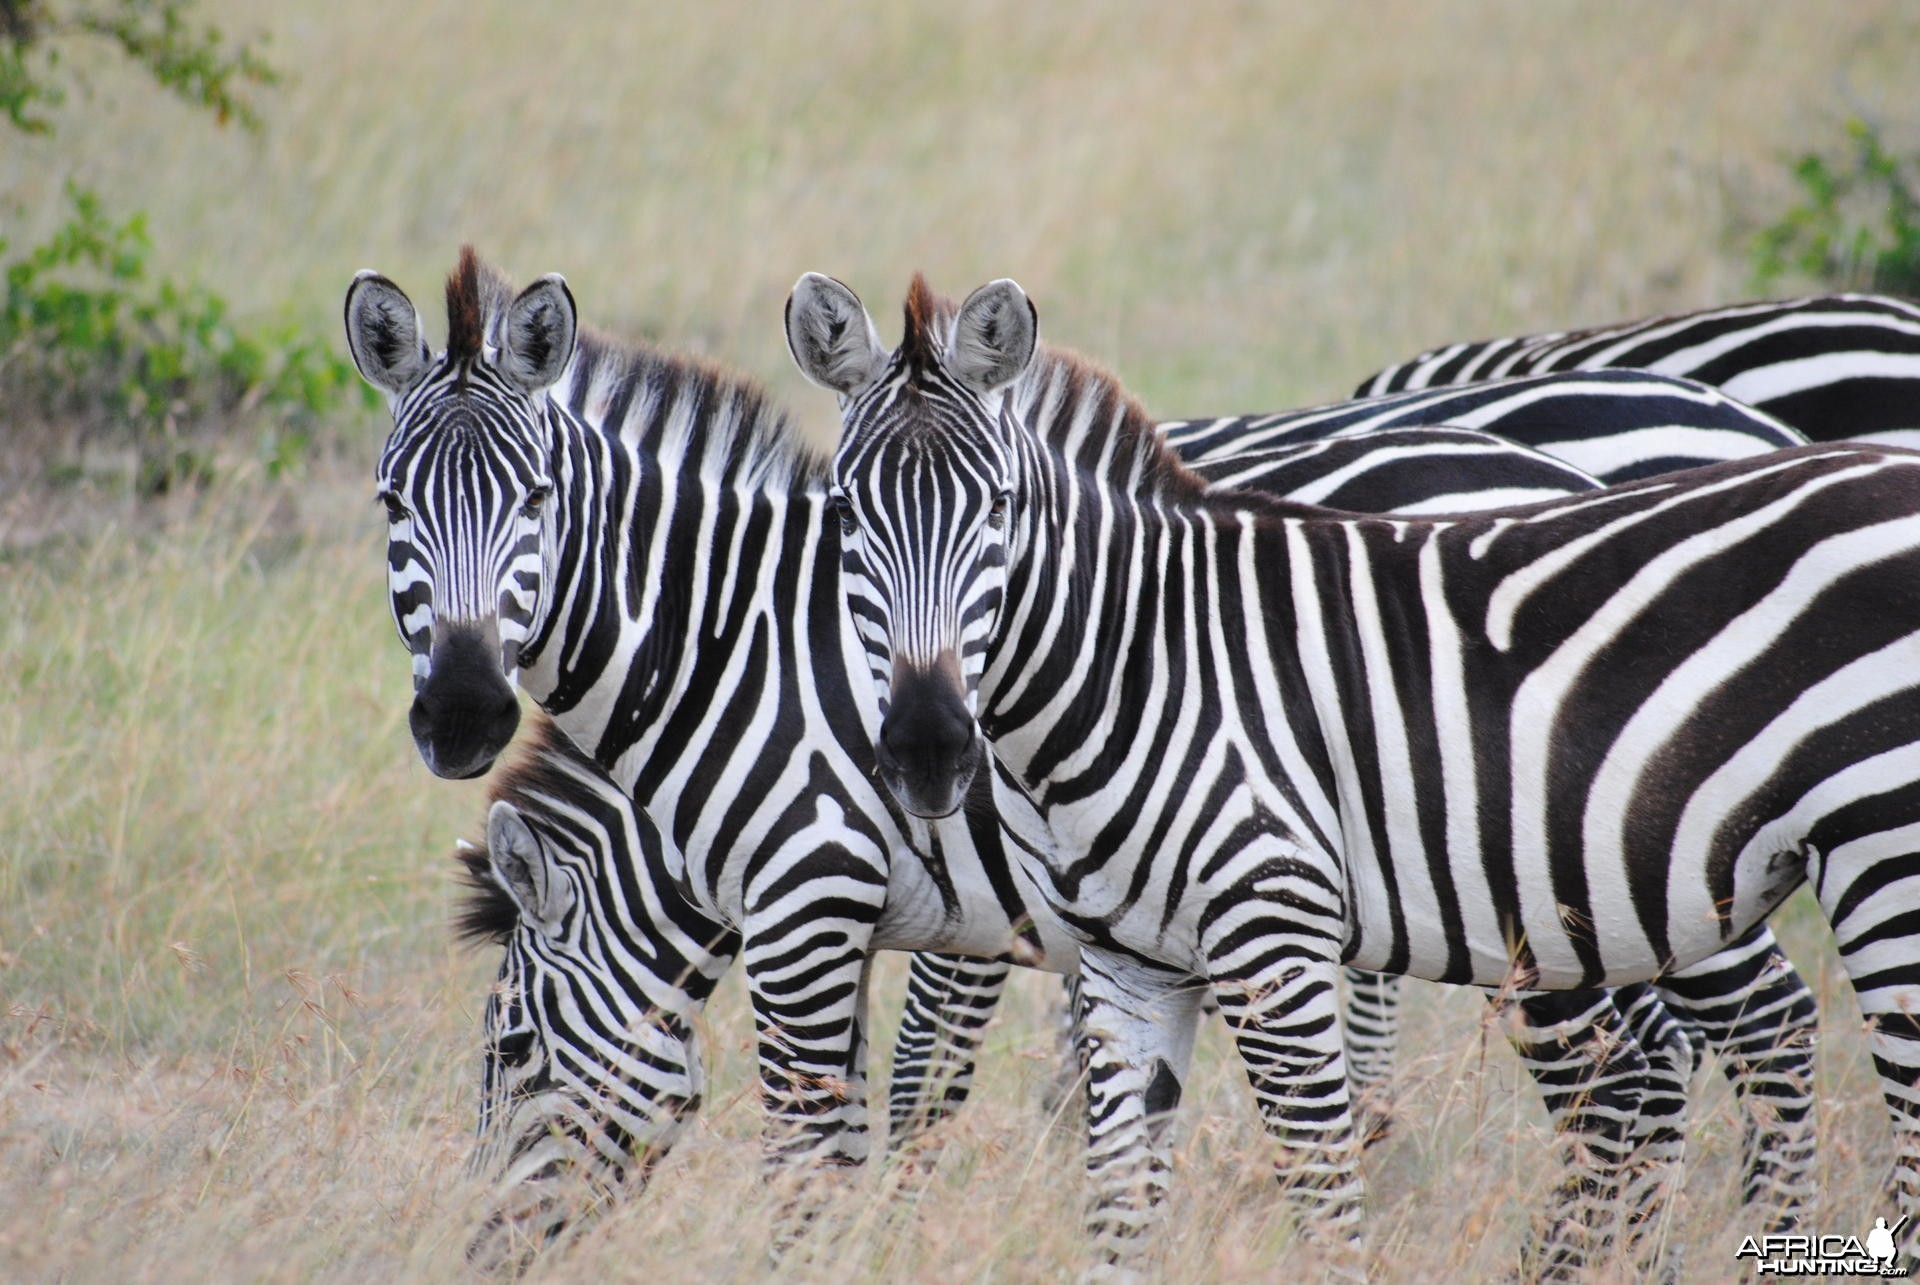 Zebras on the Masaai Mara in Kenya